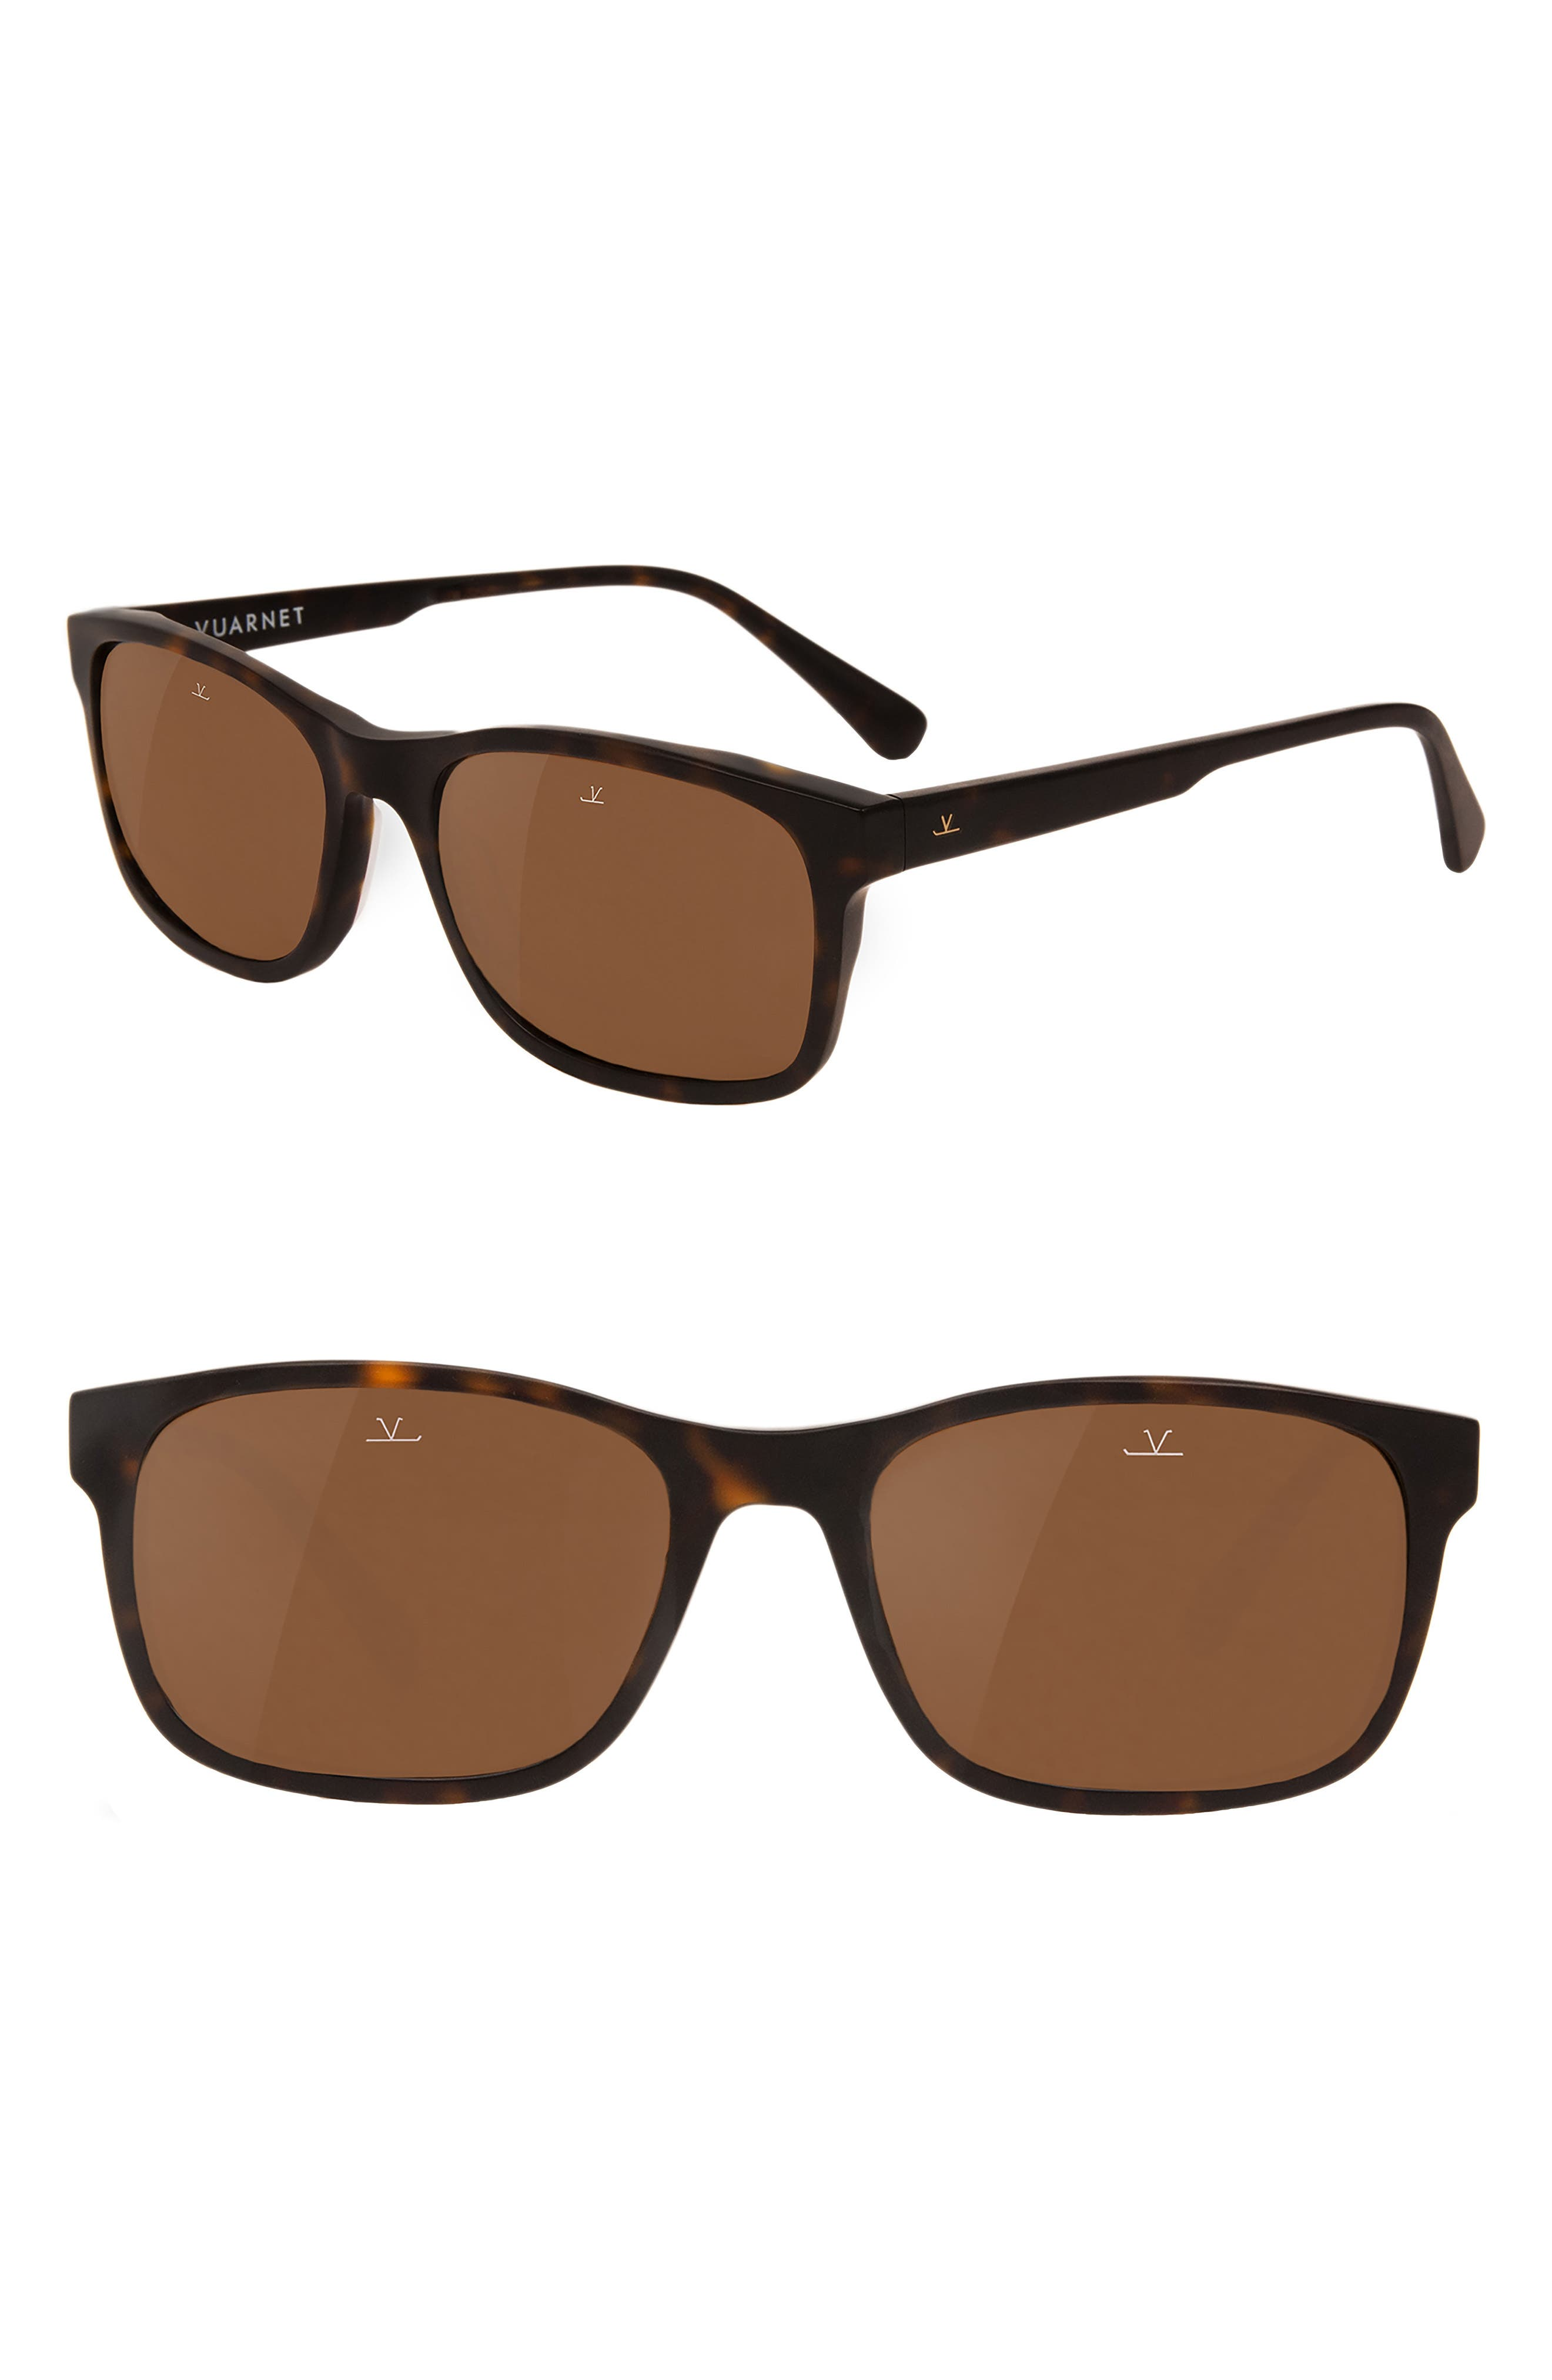 District 55mm Sunglasses,                         Main,                         color, PURE BROWN